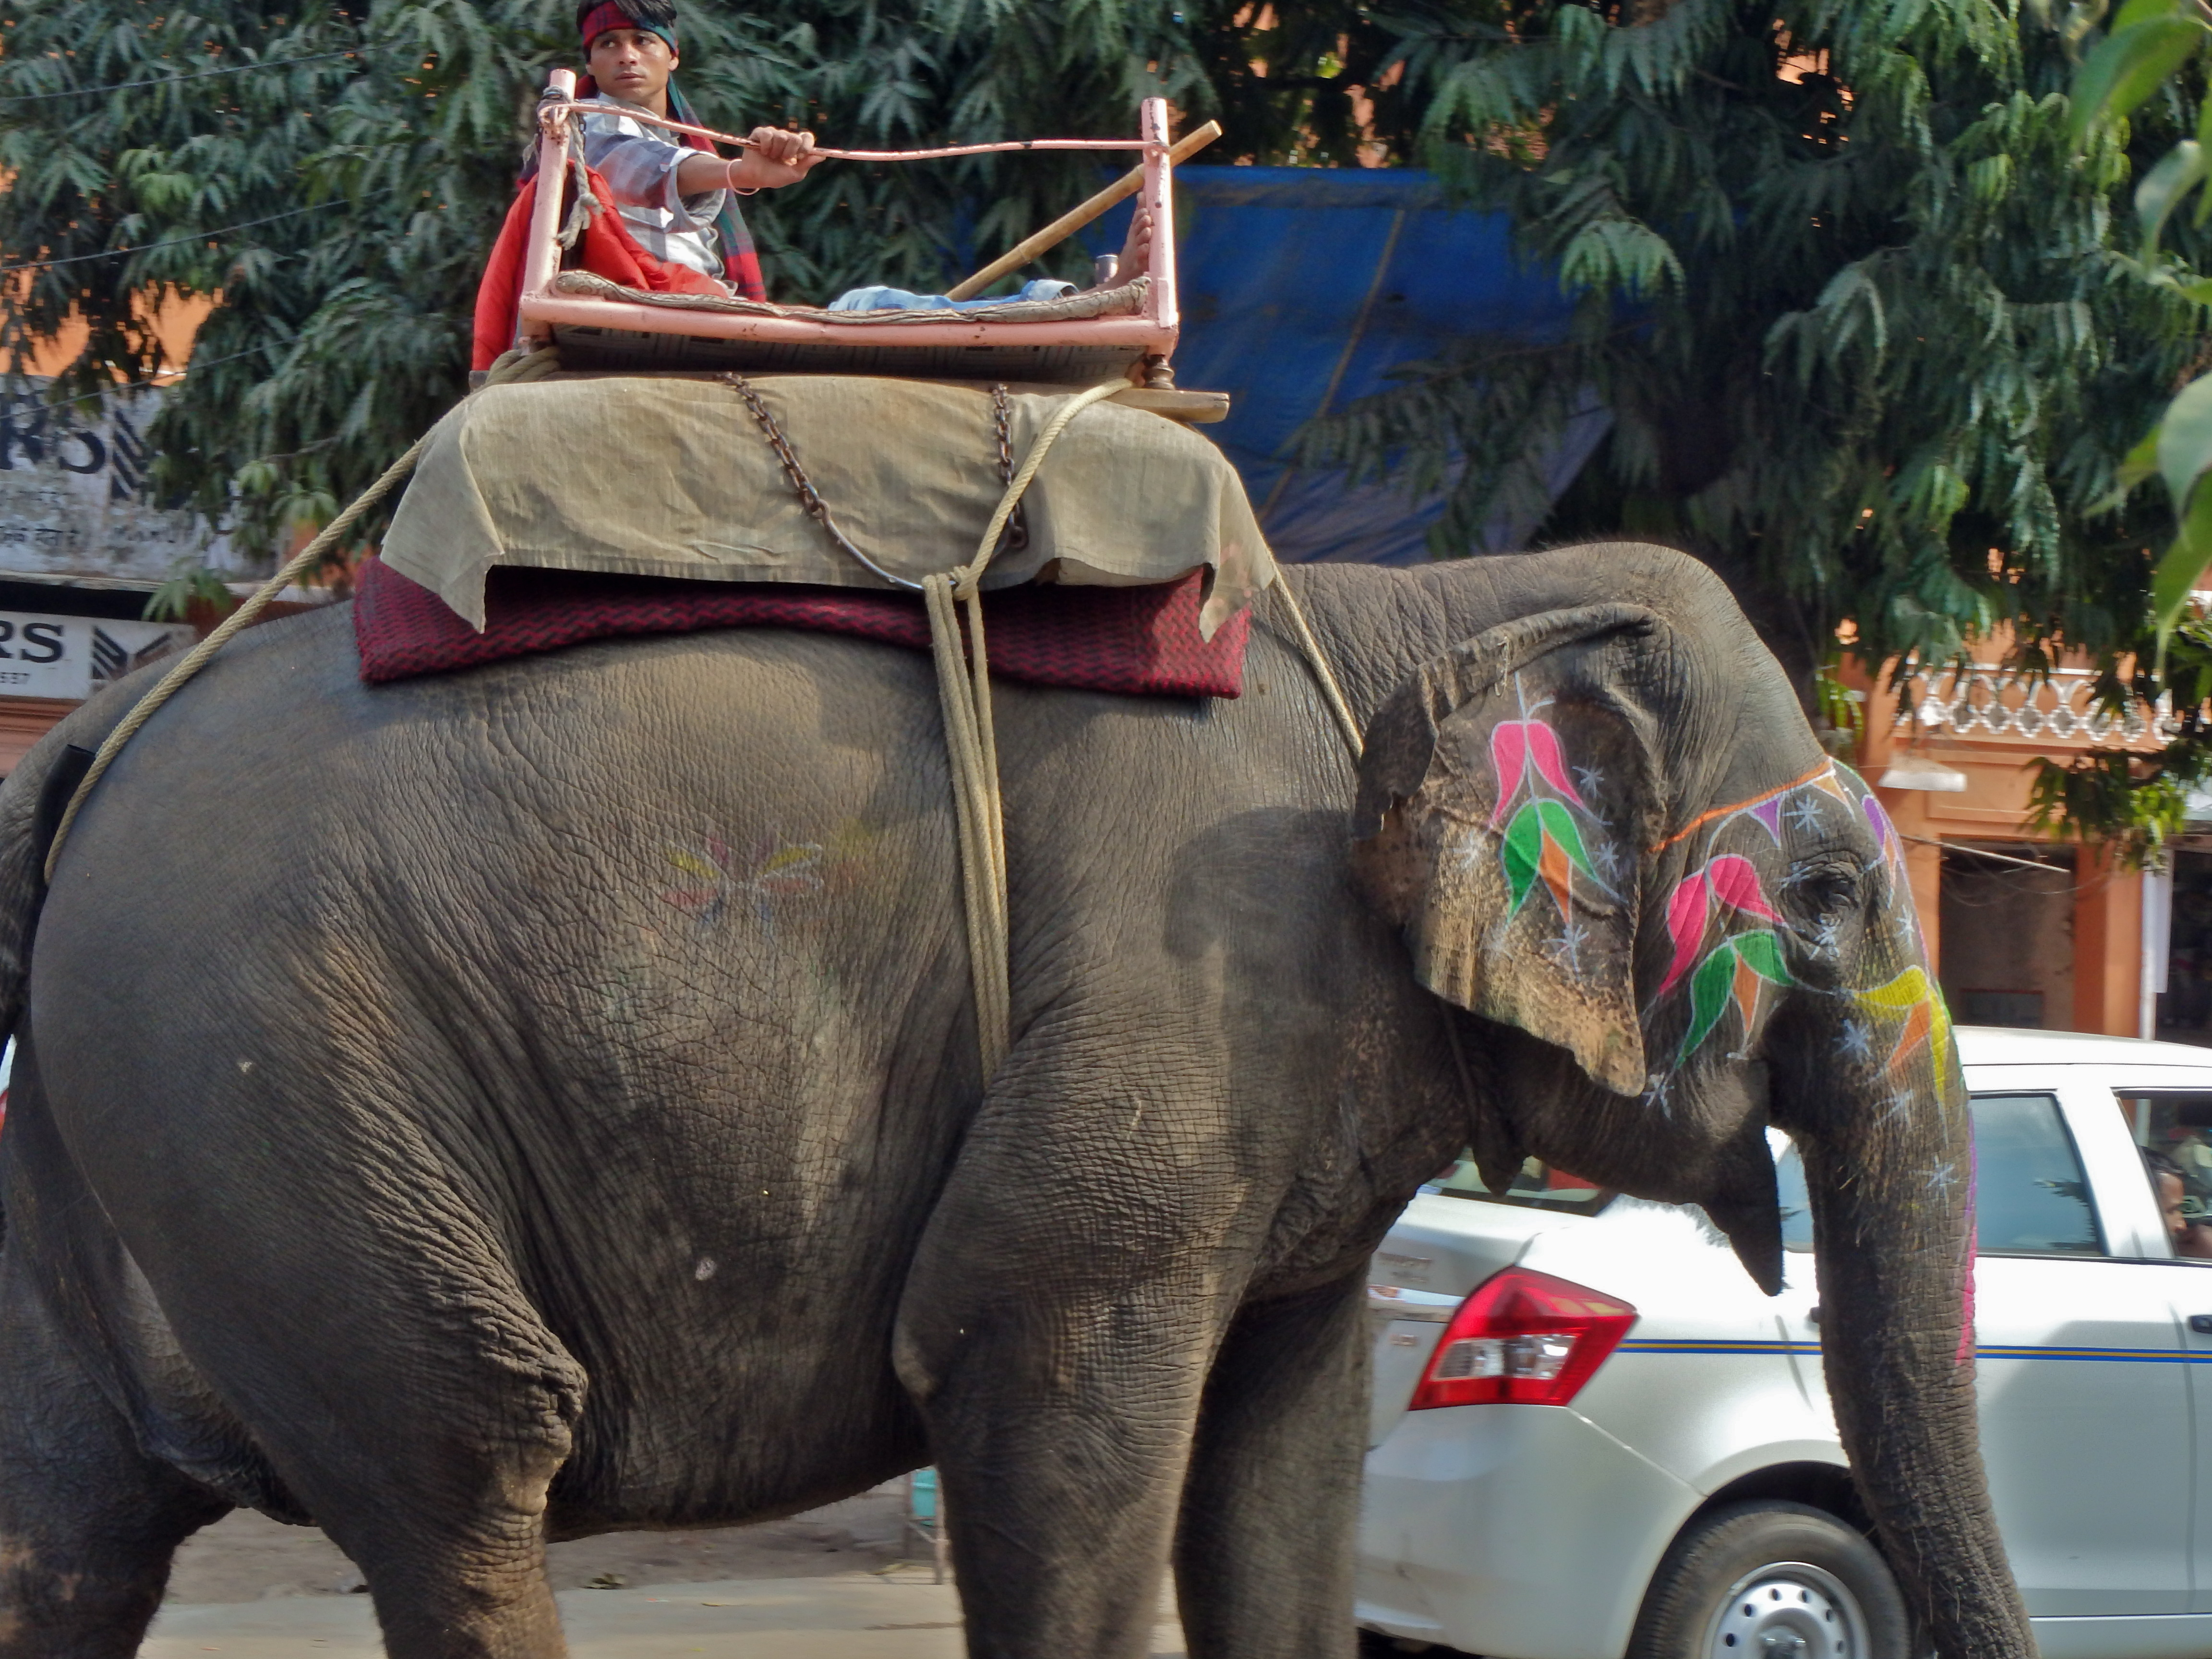 Working Elephant in Jaipur, India elephants on the streets of india what to see in jaipur for women travellers can women travel safely in india?